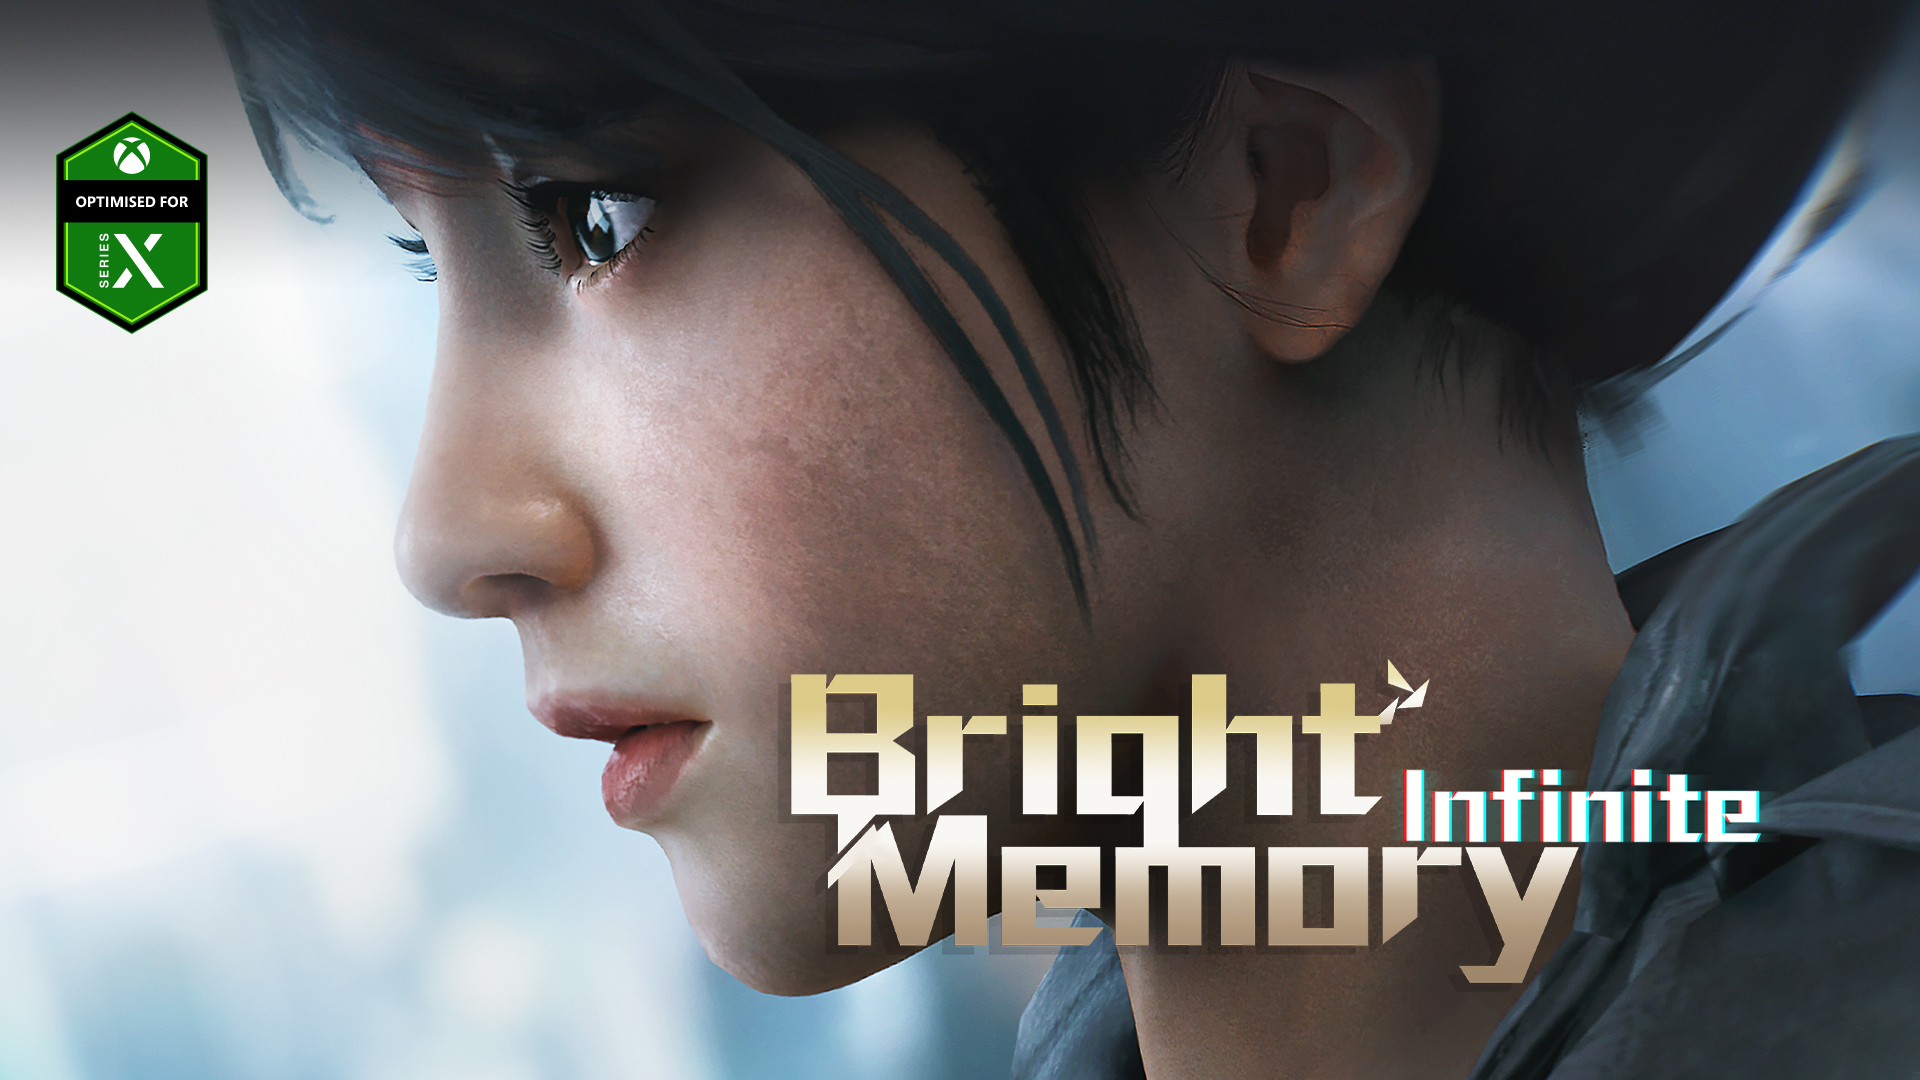 Bright Memory Infinite, Optimised for Series X, a young woman looks into the distance.